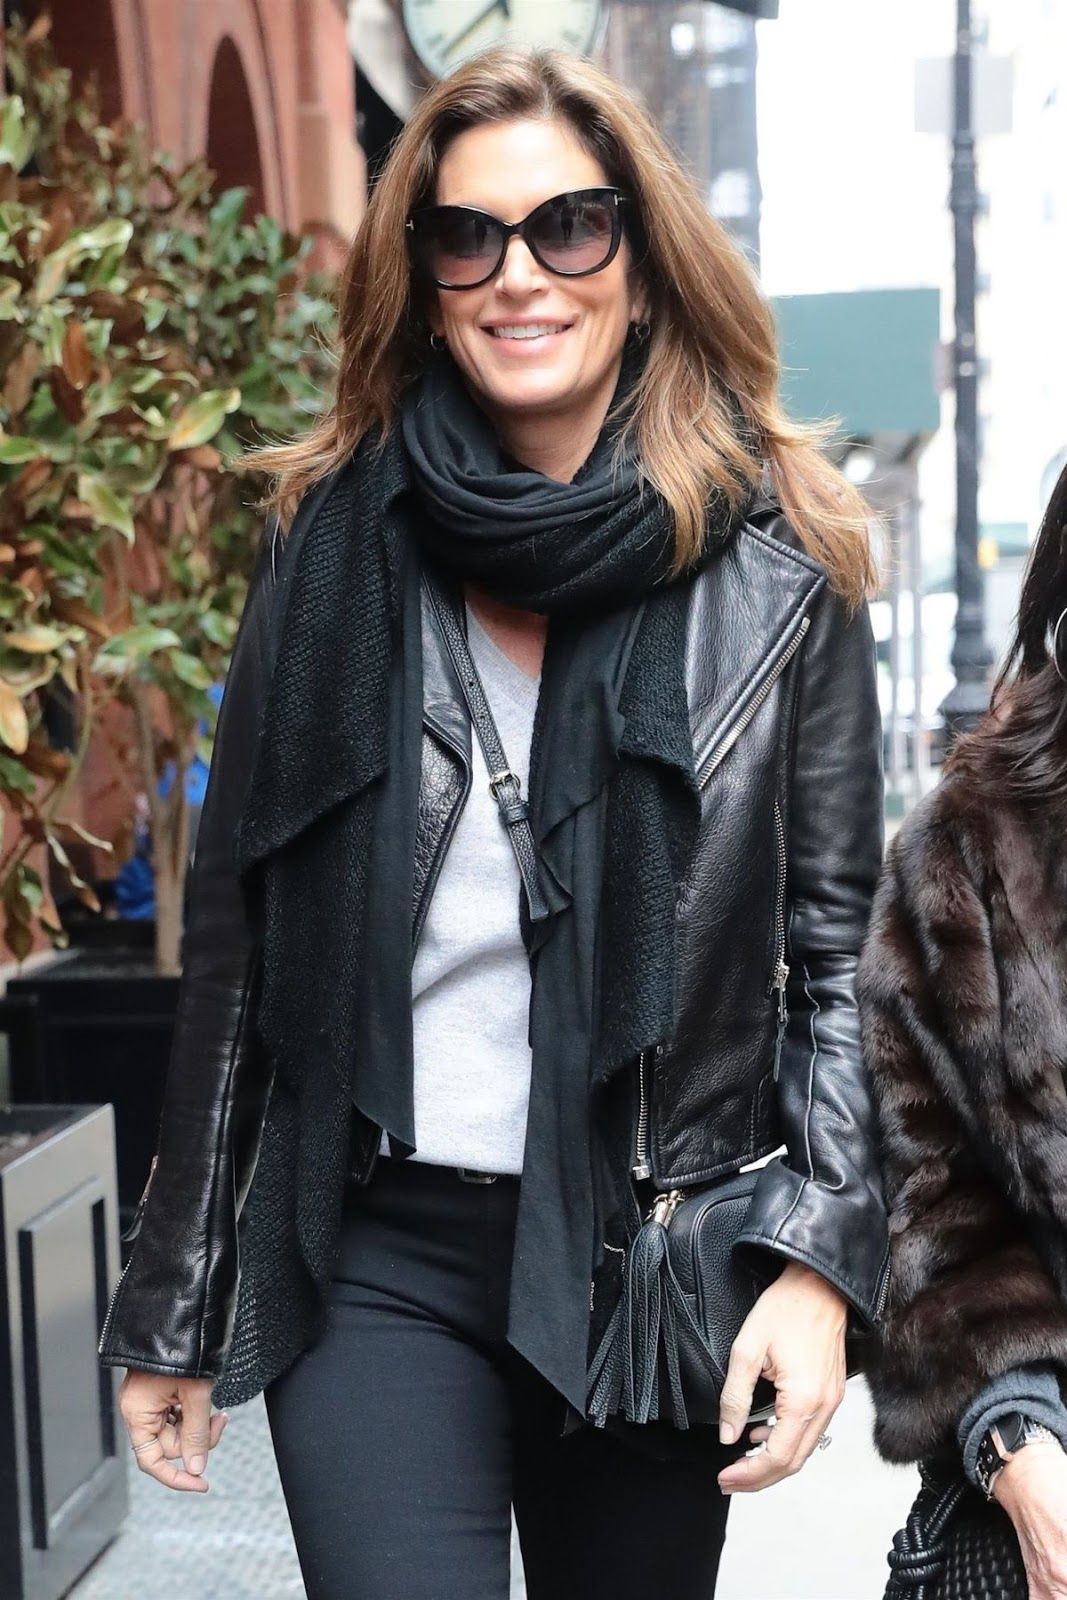 Cindy Crawford and a friend are spotted out for a stroll in New York